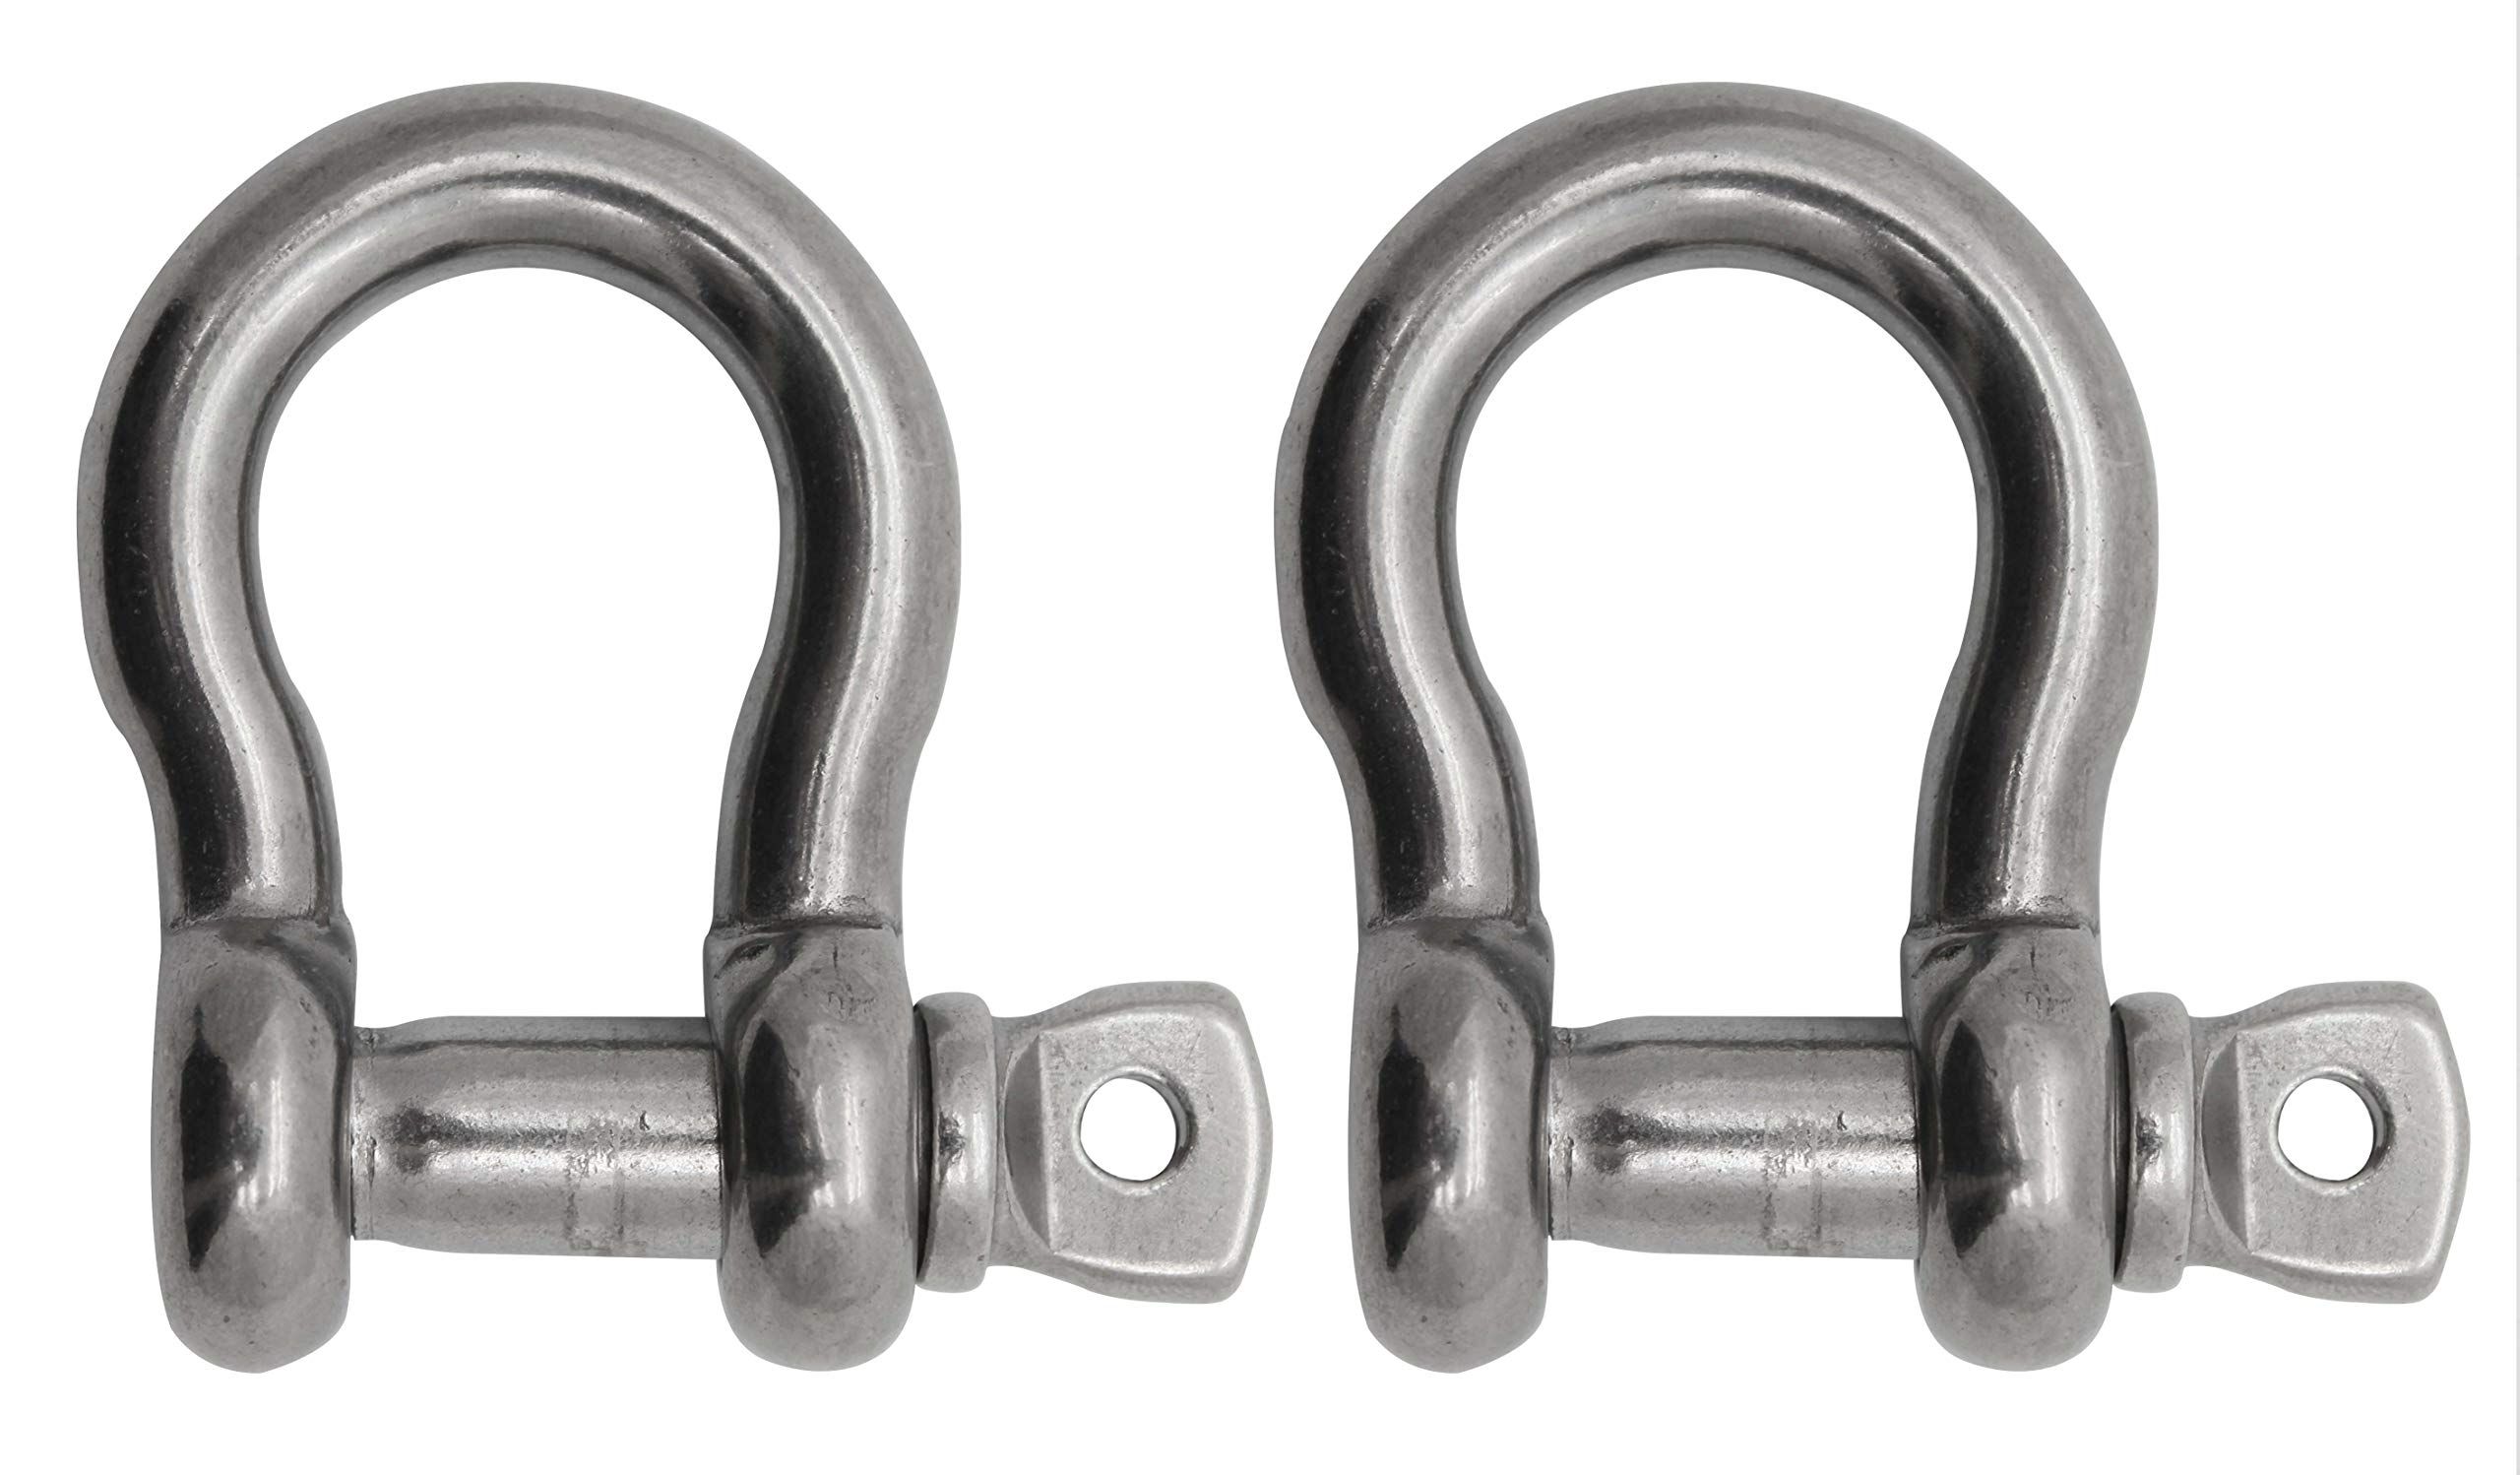 "Extreme Max 3006.8336.2 BoatTector Stainless Steel Anchor Shackle - 1"", 2-Pack,Silver"